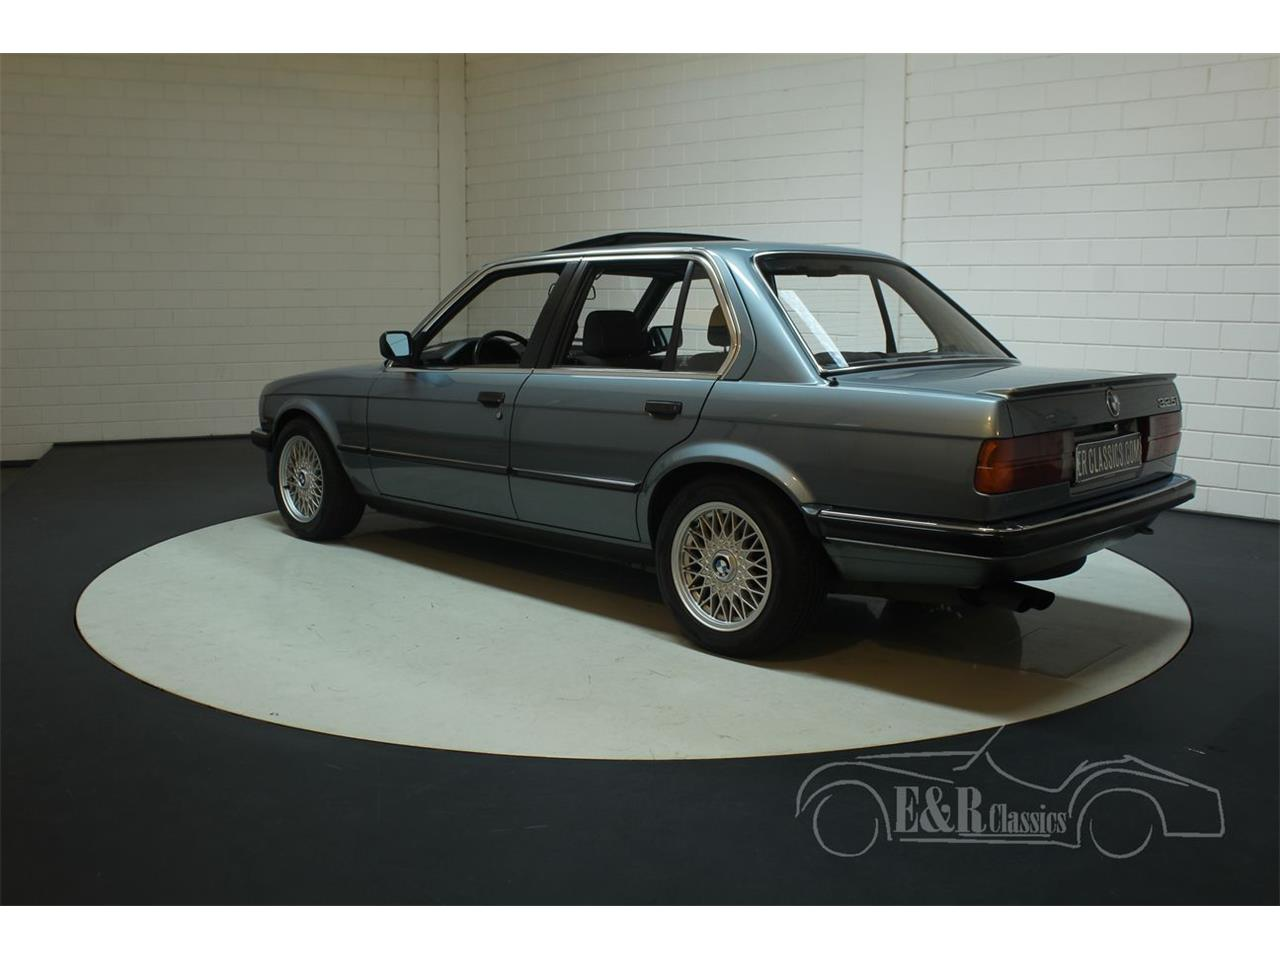 Large Picture of '86 BMW 325i located in Waalwijk - Keine Angabe - - $33,850.00 Offered by E & R Classics - PGT1